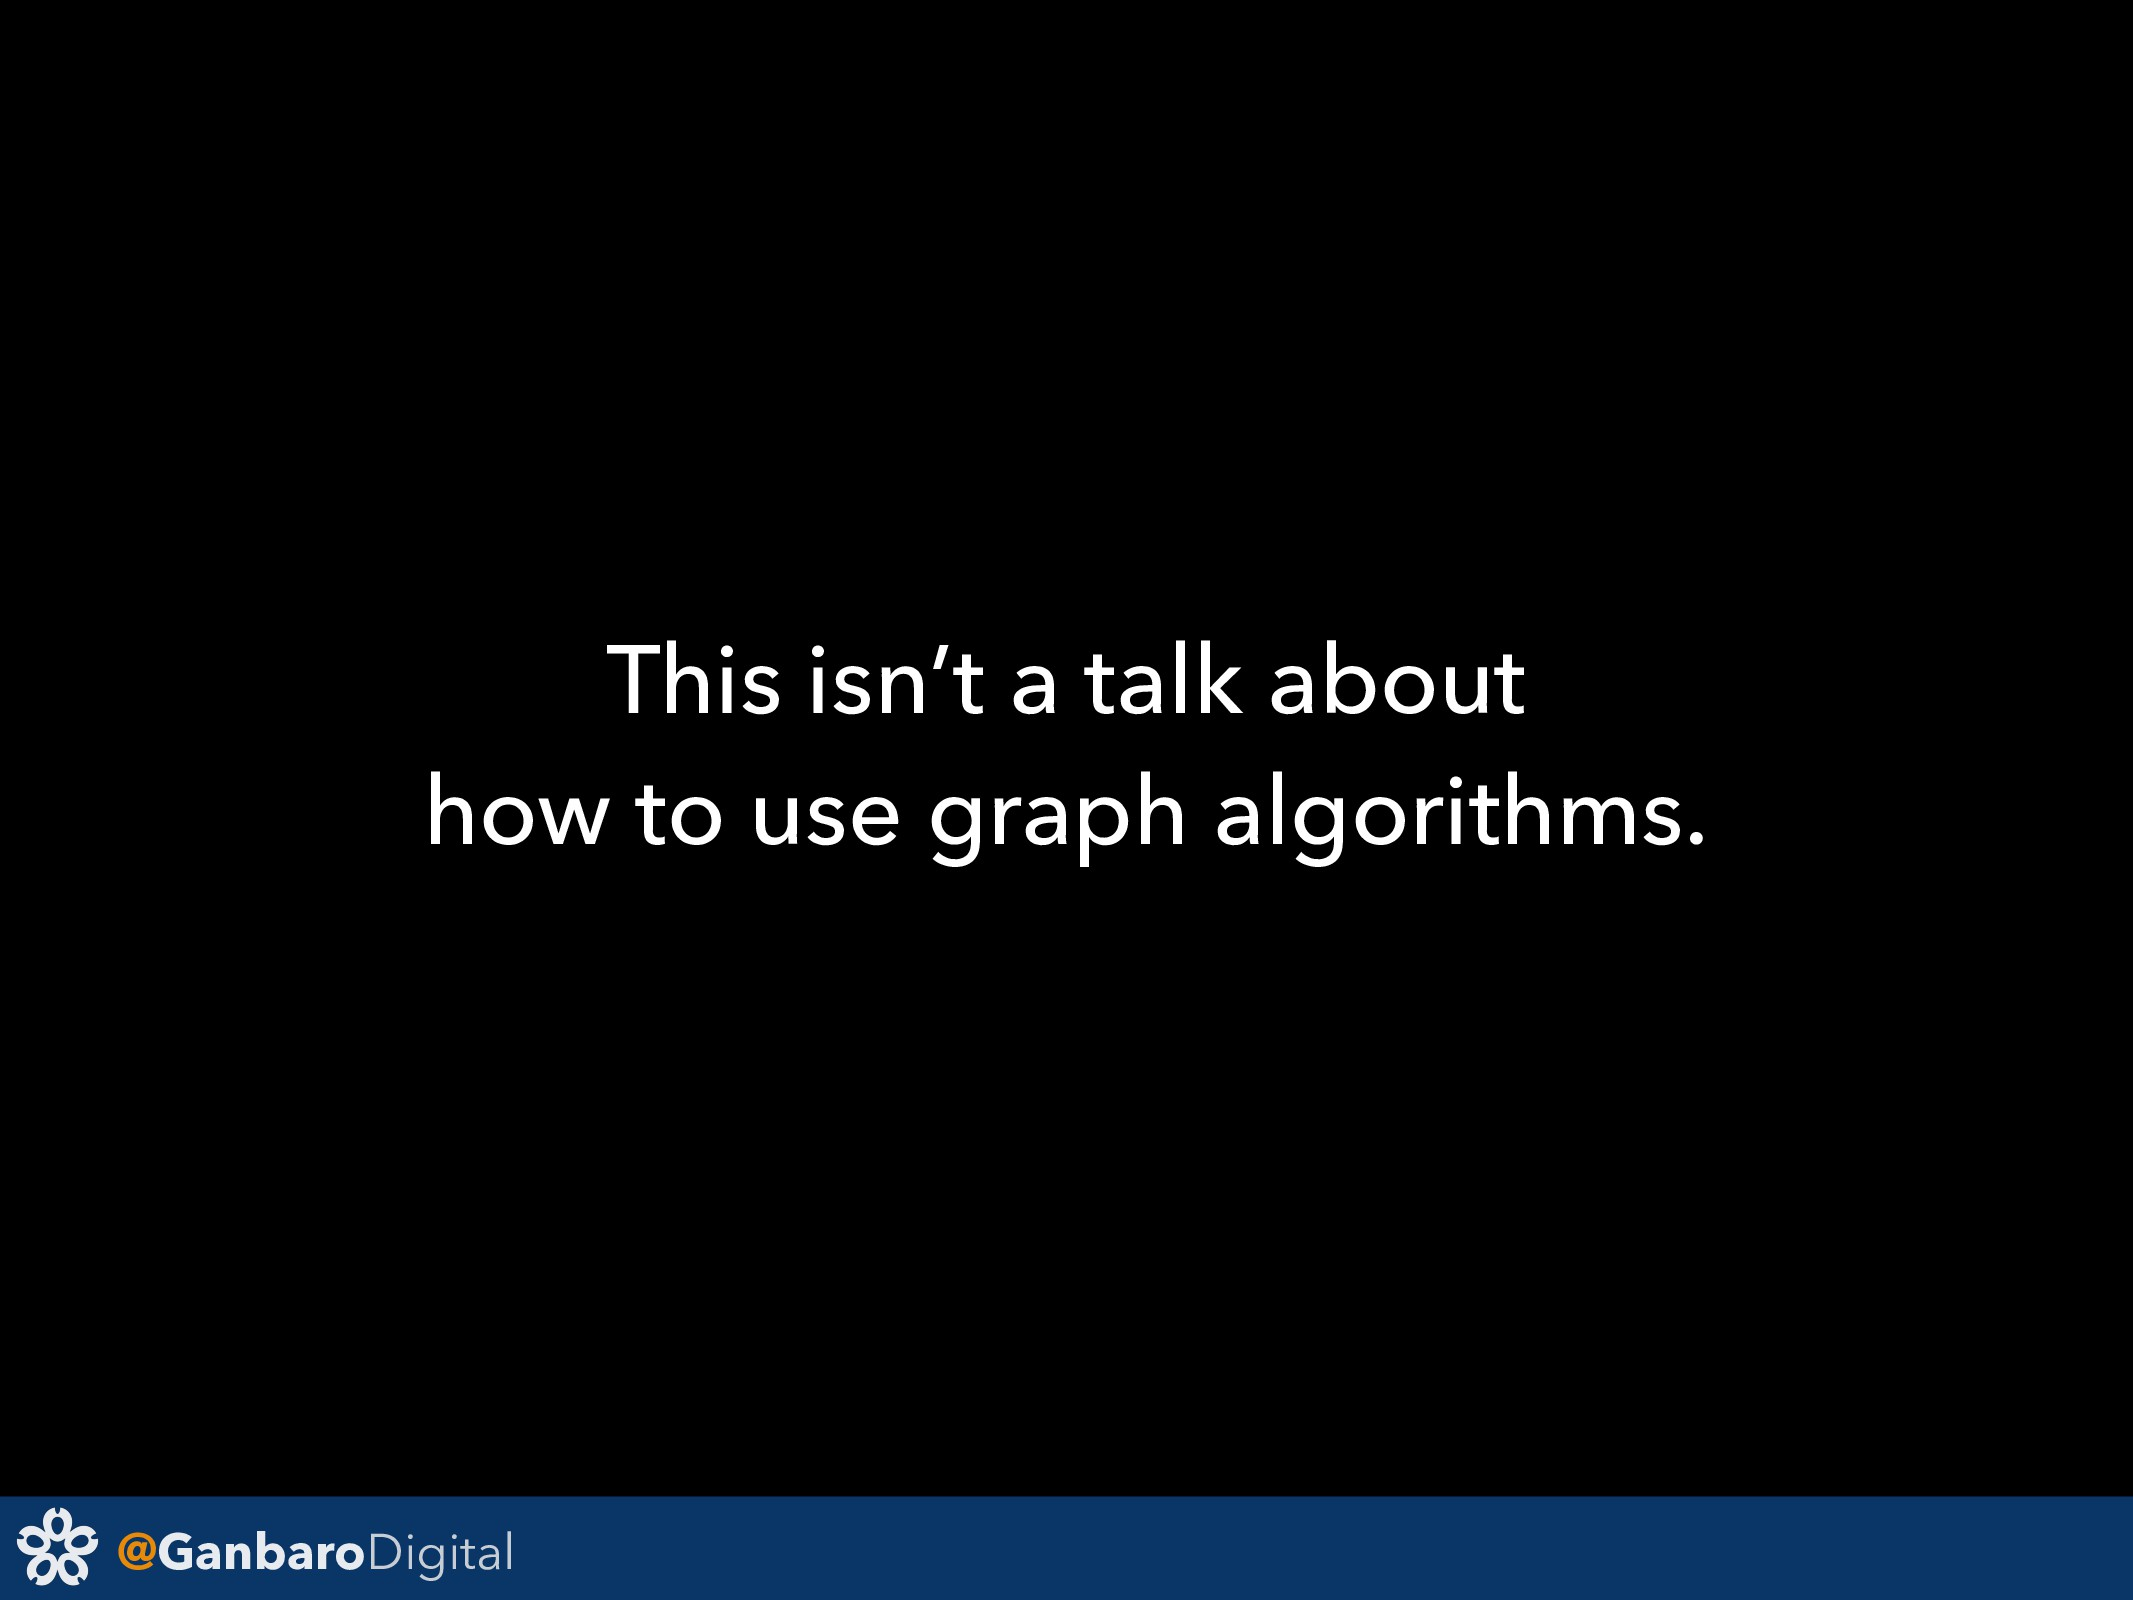 @GanbaroDigital This isn't a talk about how to ...